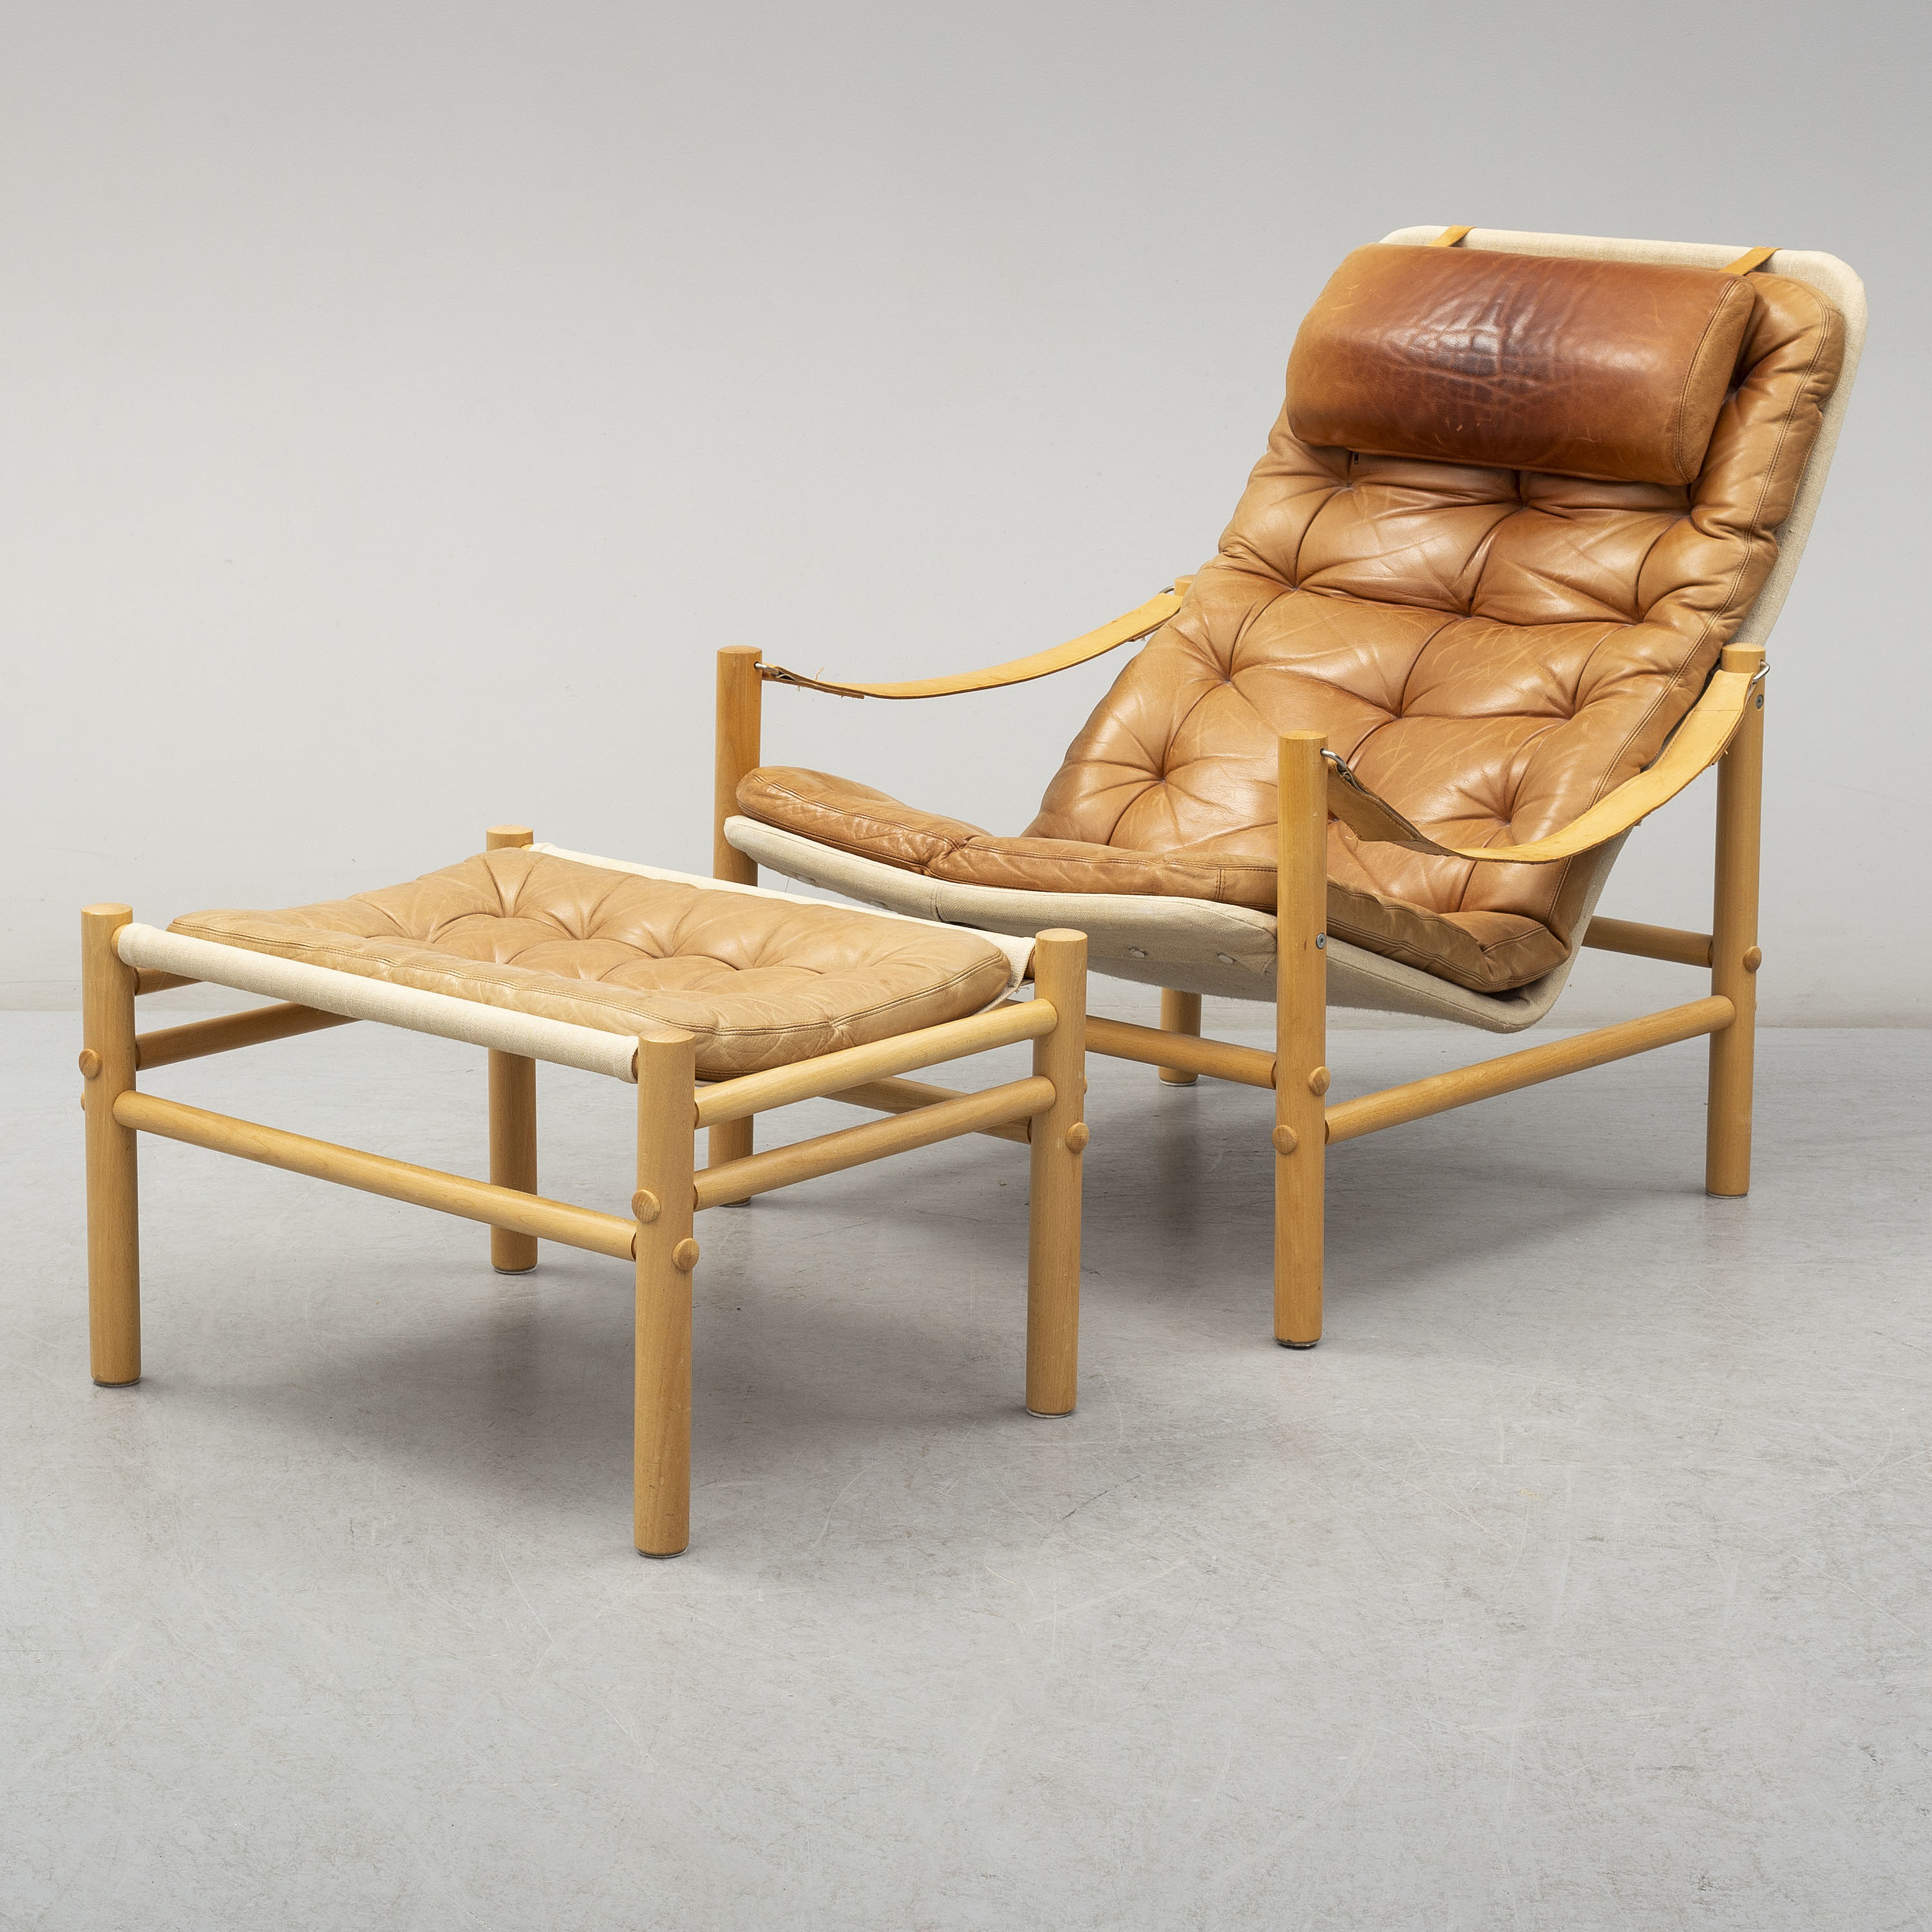 Cool Bror Boije A Junker Leather Covered Easy Chair And Dailytribune Chair Design For Home Dailytribuneorg